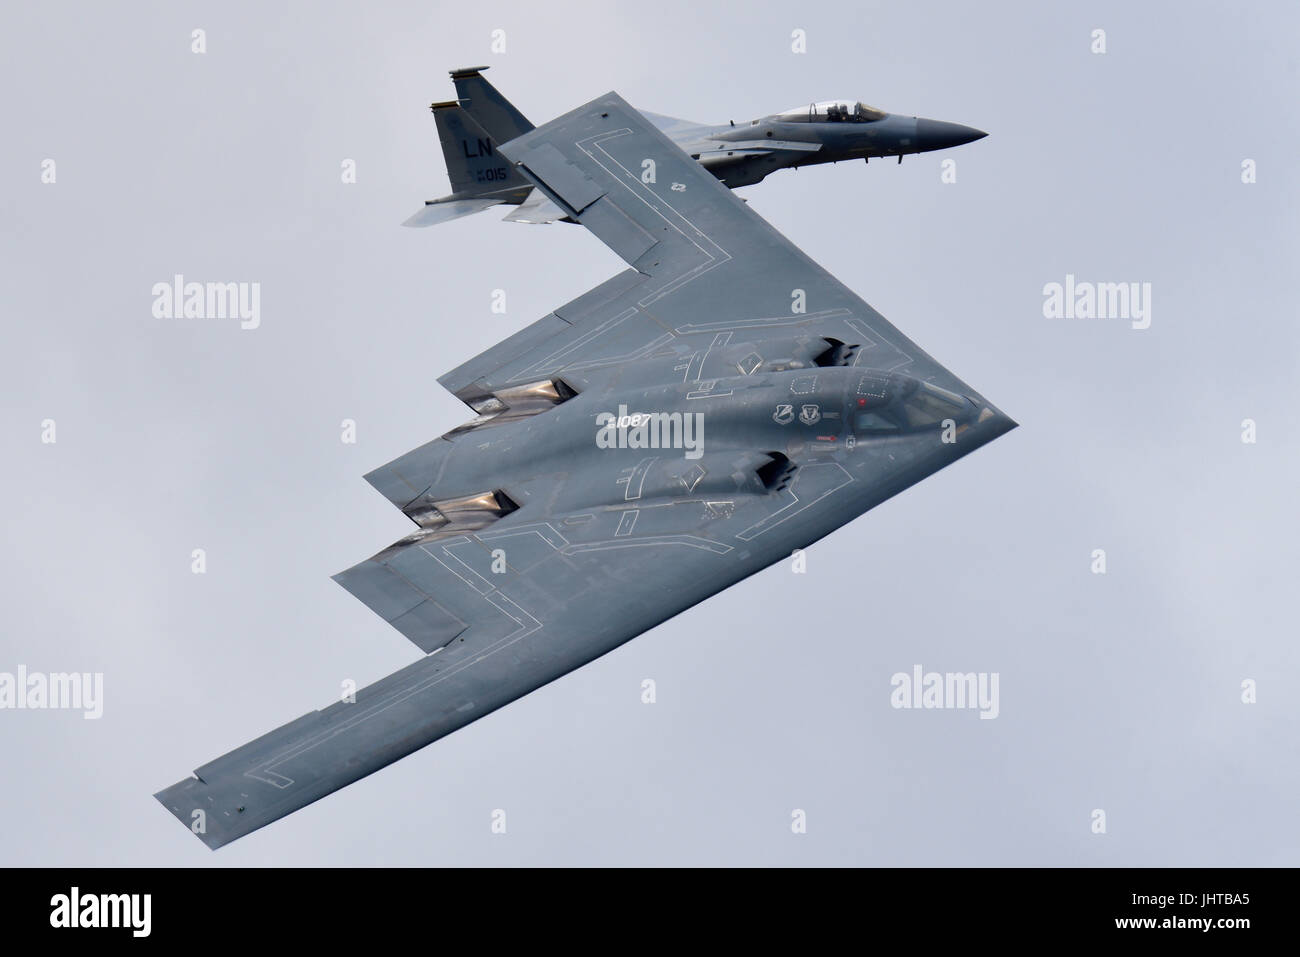 northrop-grumman-b-2-spirit-stealth-bomber-plane-which-flew-direct-JHTBA5.jpg